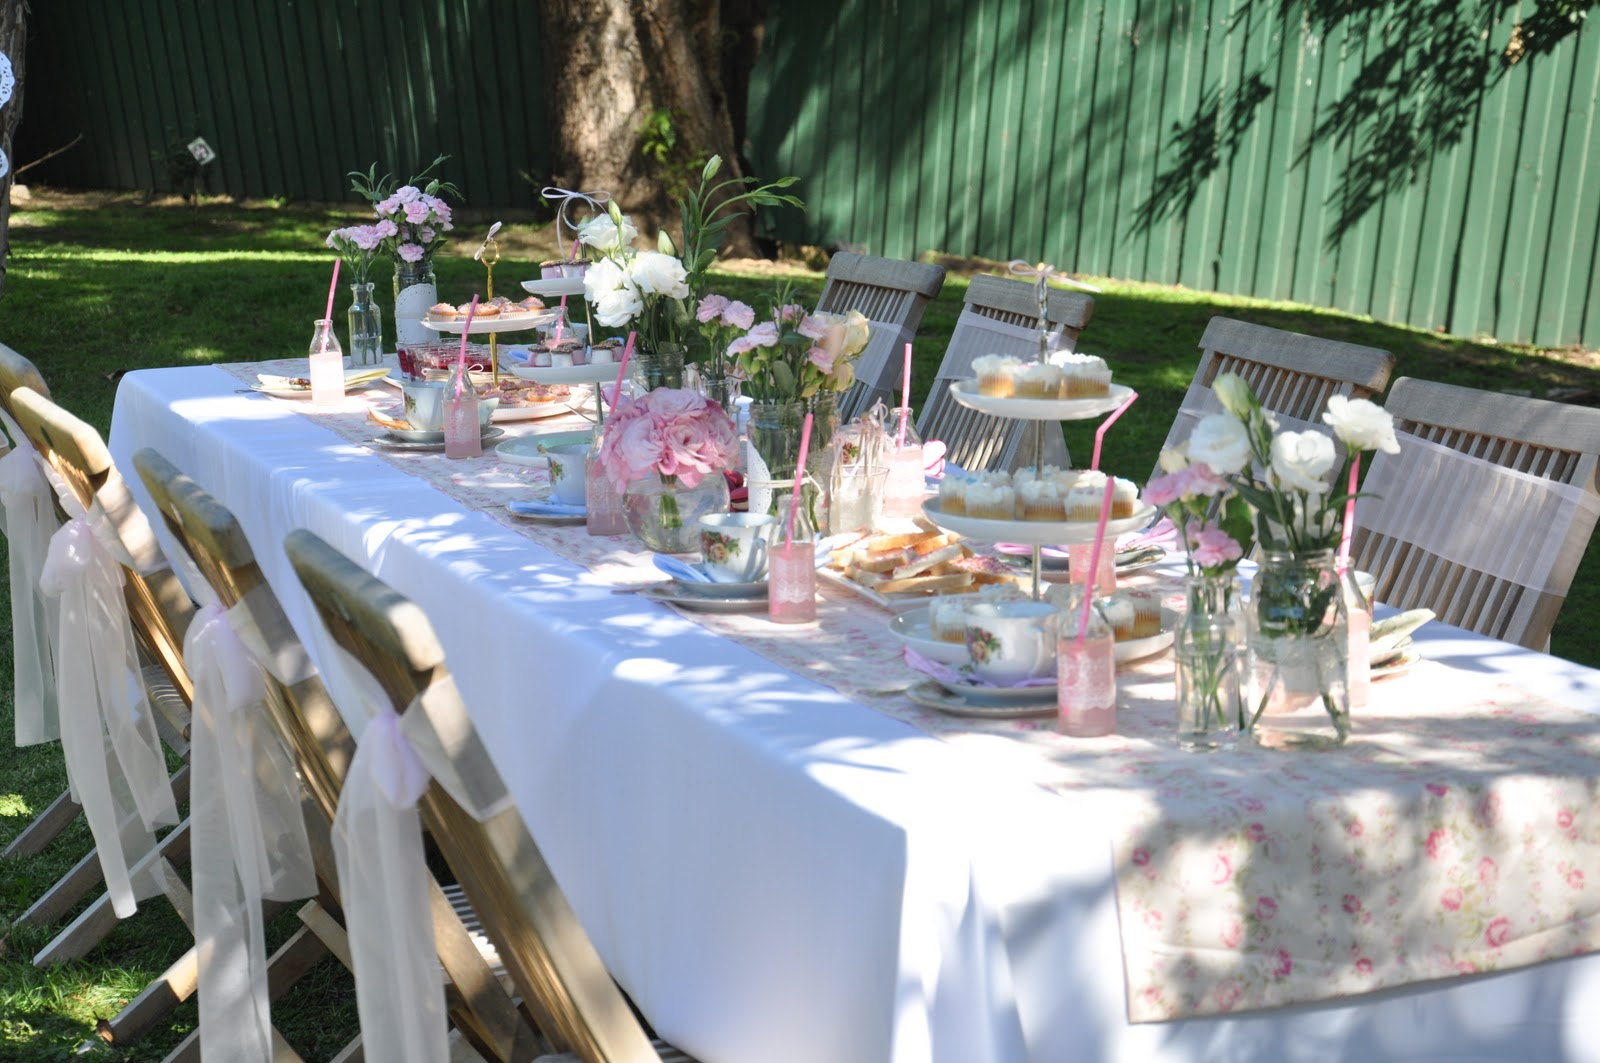 table of the garden party and The 9th annual sharon springs garden party is may 26th & 27th whether you would like to be a vendor or a visitor enjoying the bucolic scene, there is a seat at our table.